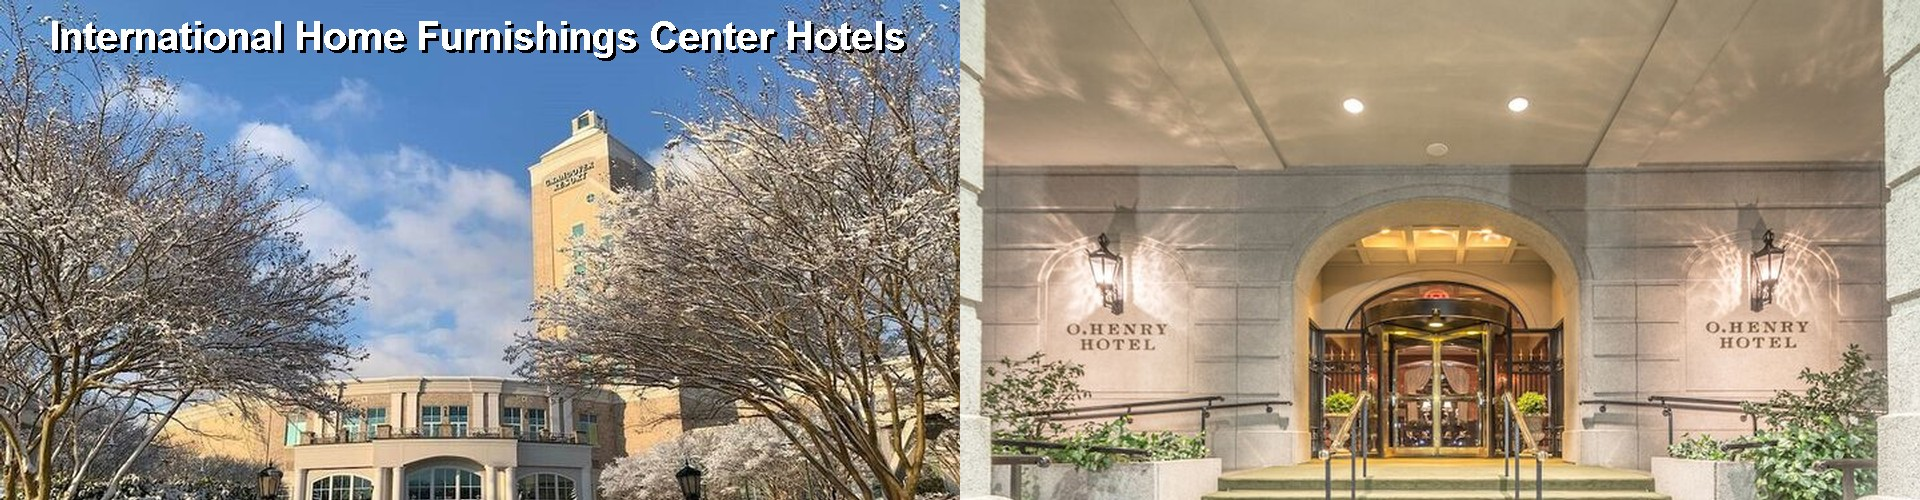 4 Best Hotels near International Home Furnishings Center